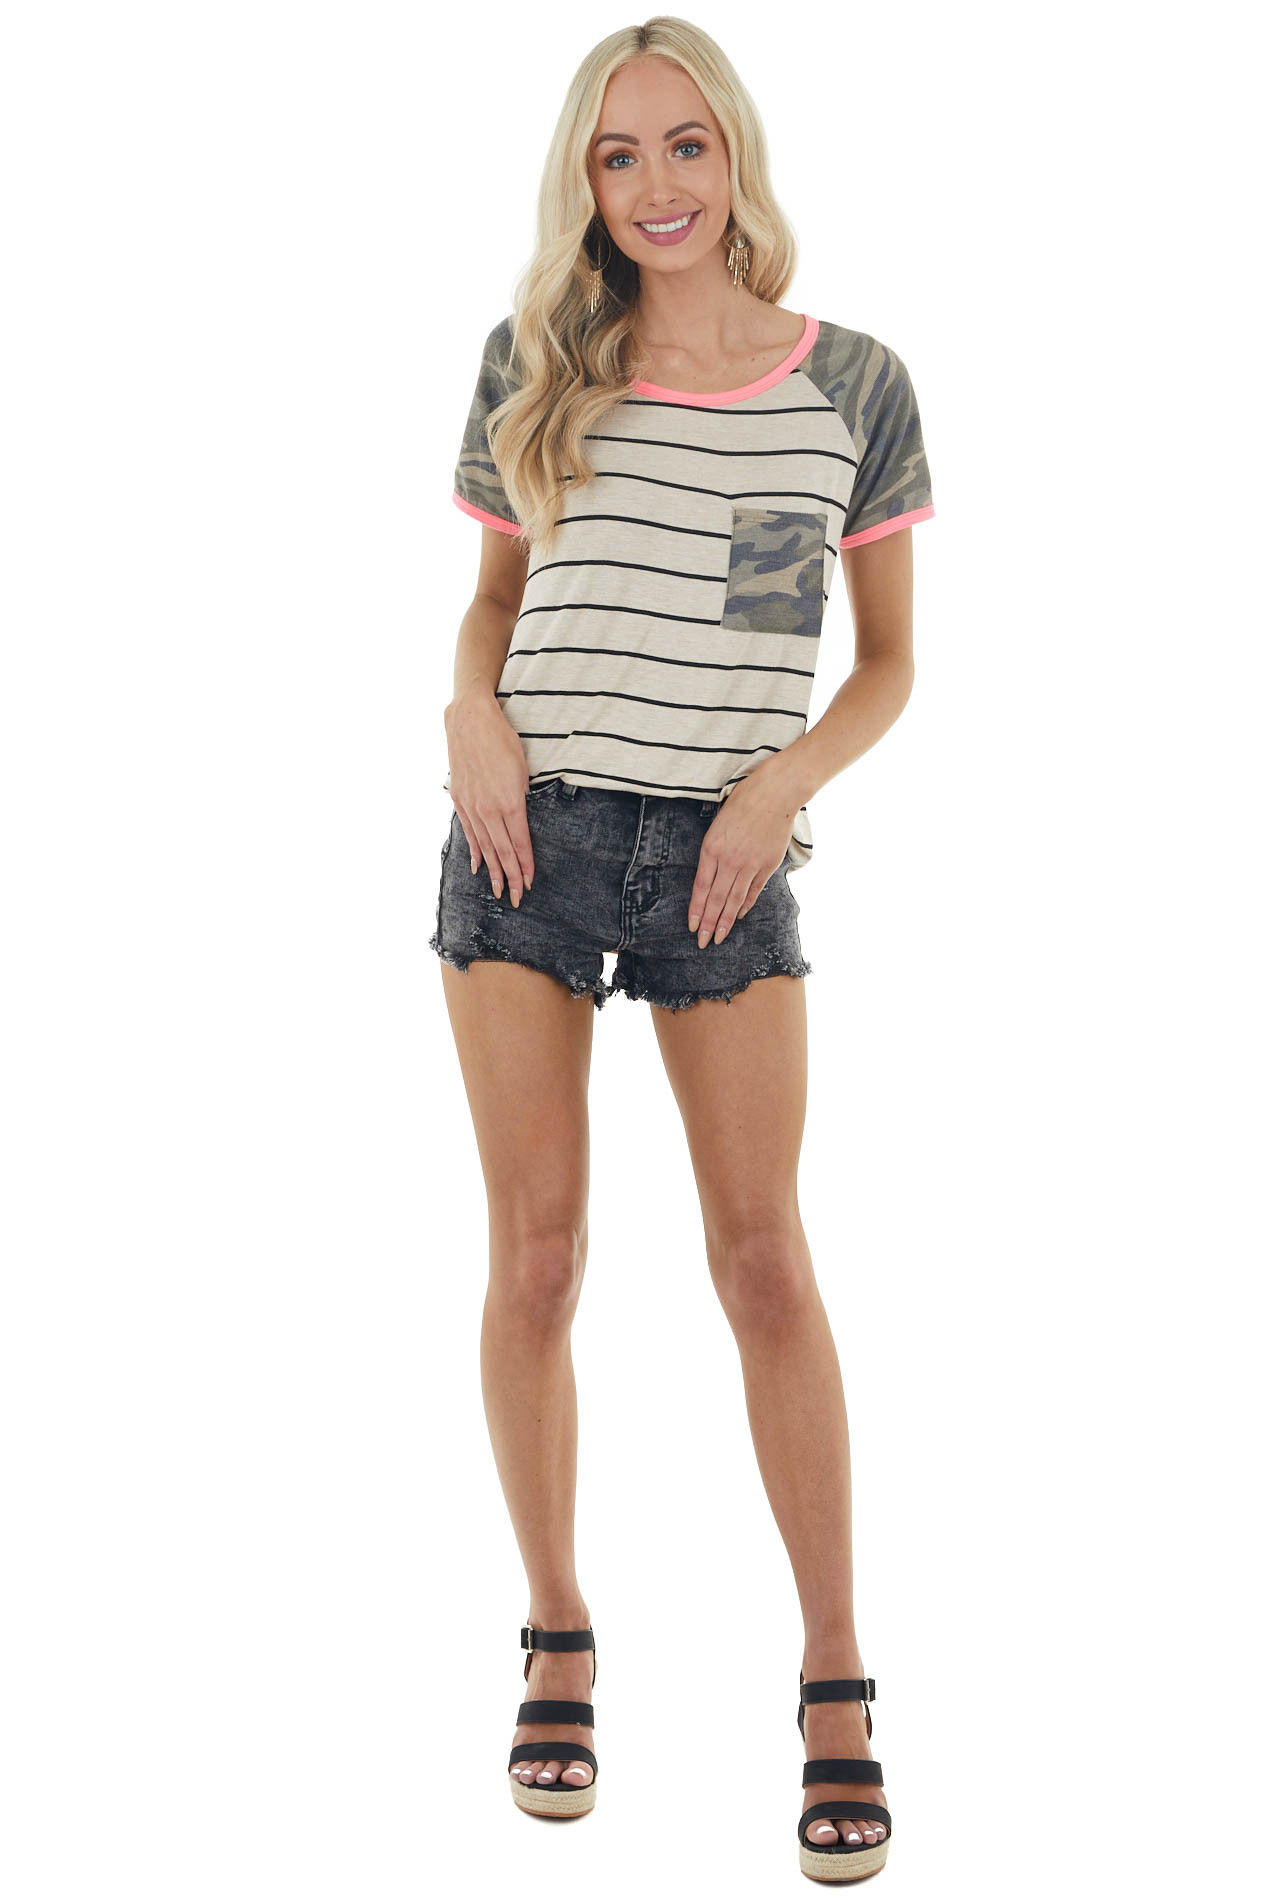 Oatmeal and Black Striped Knit Top with Camo and Neon Detail